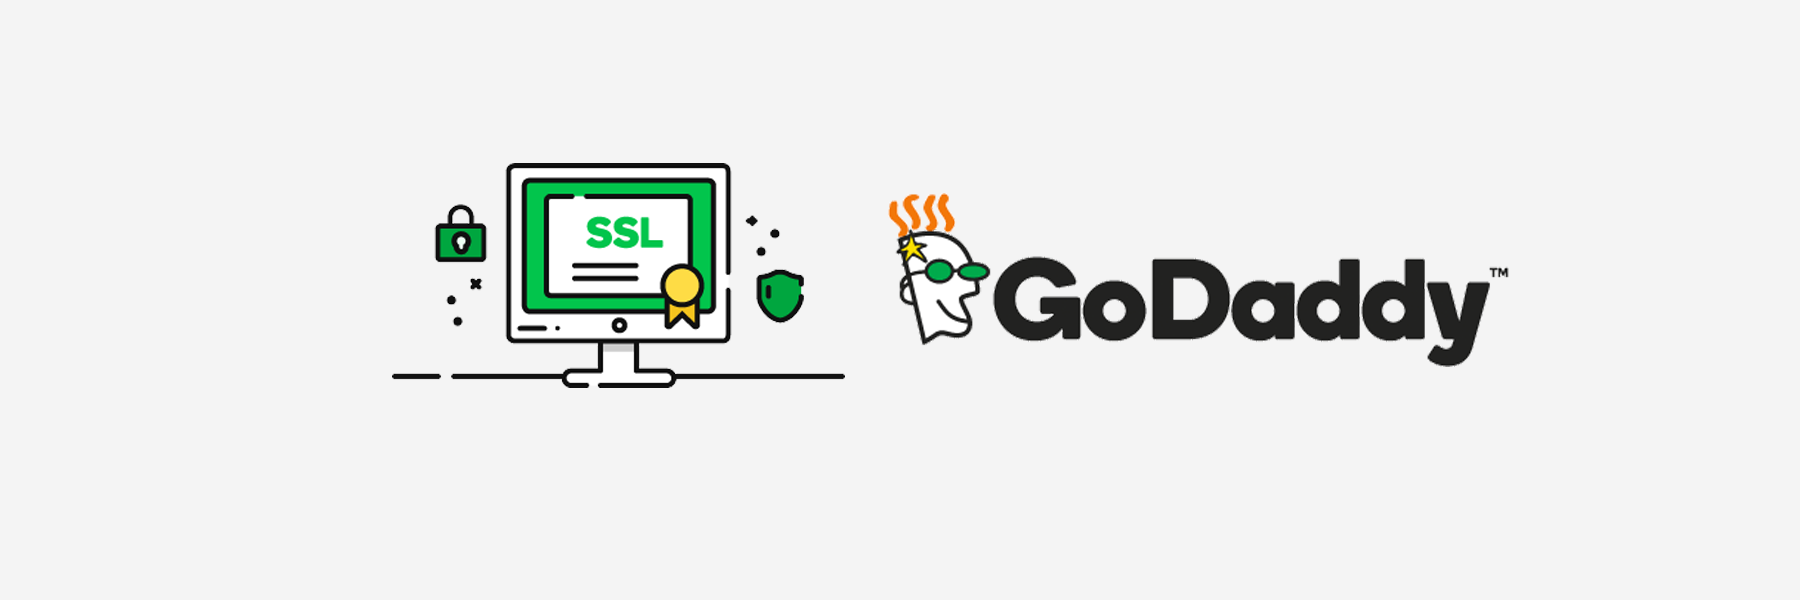 How To Install A Free Ssl Certificate On Godaddy